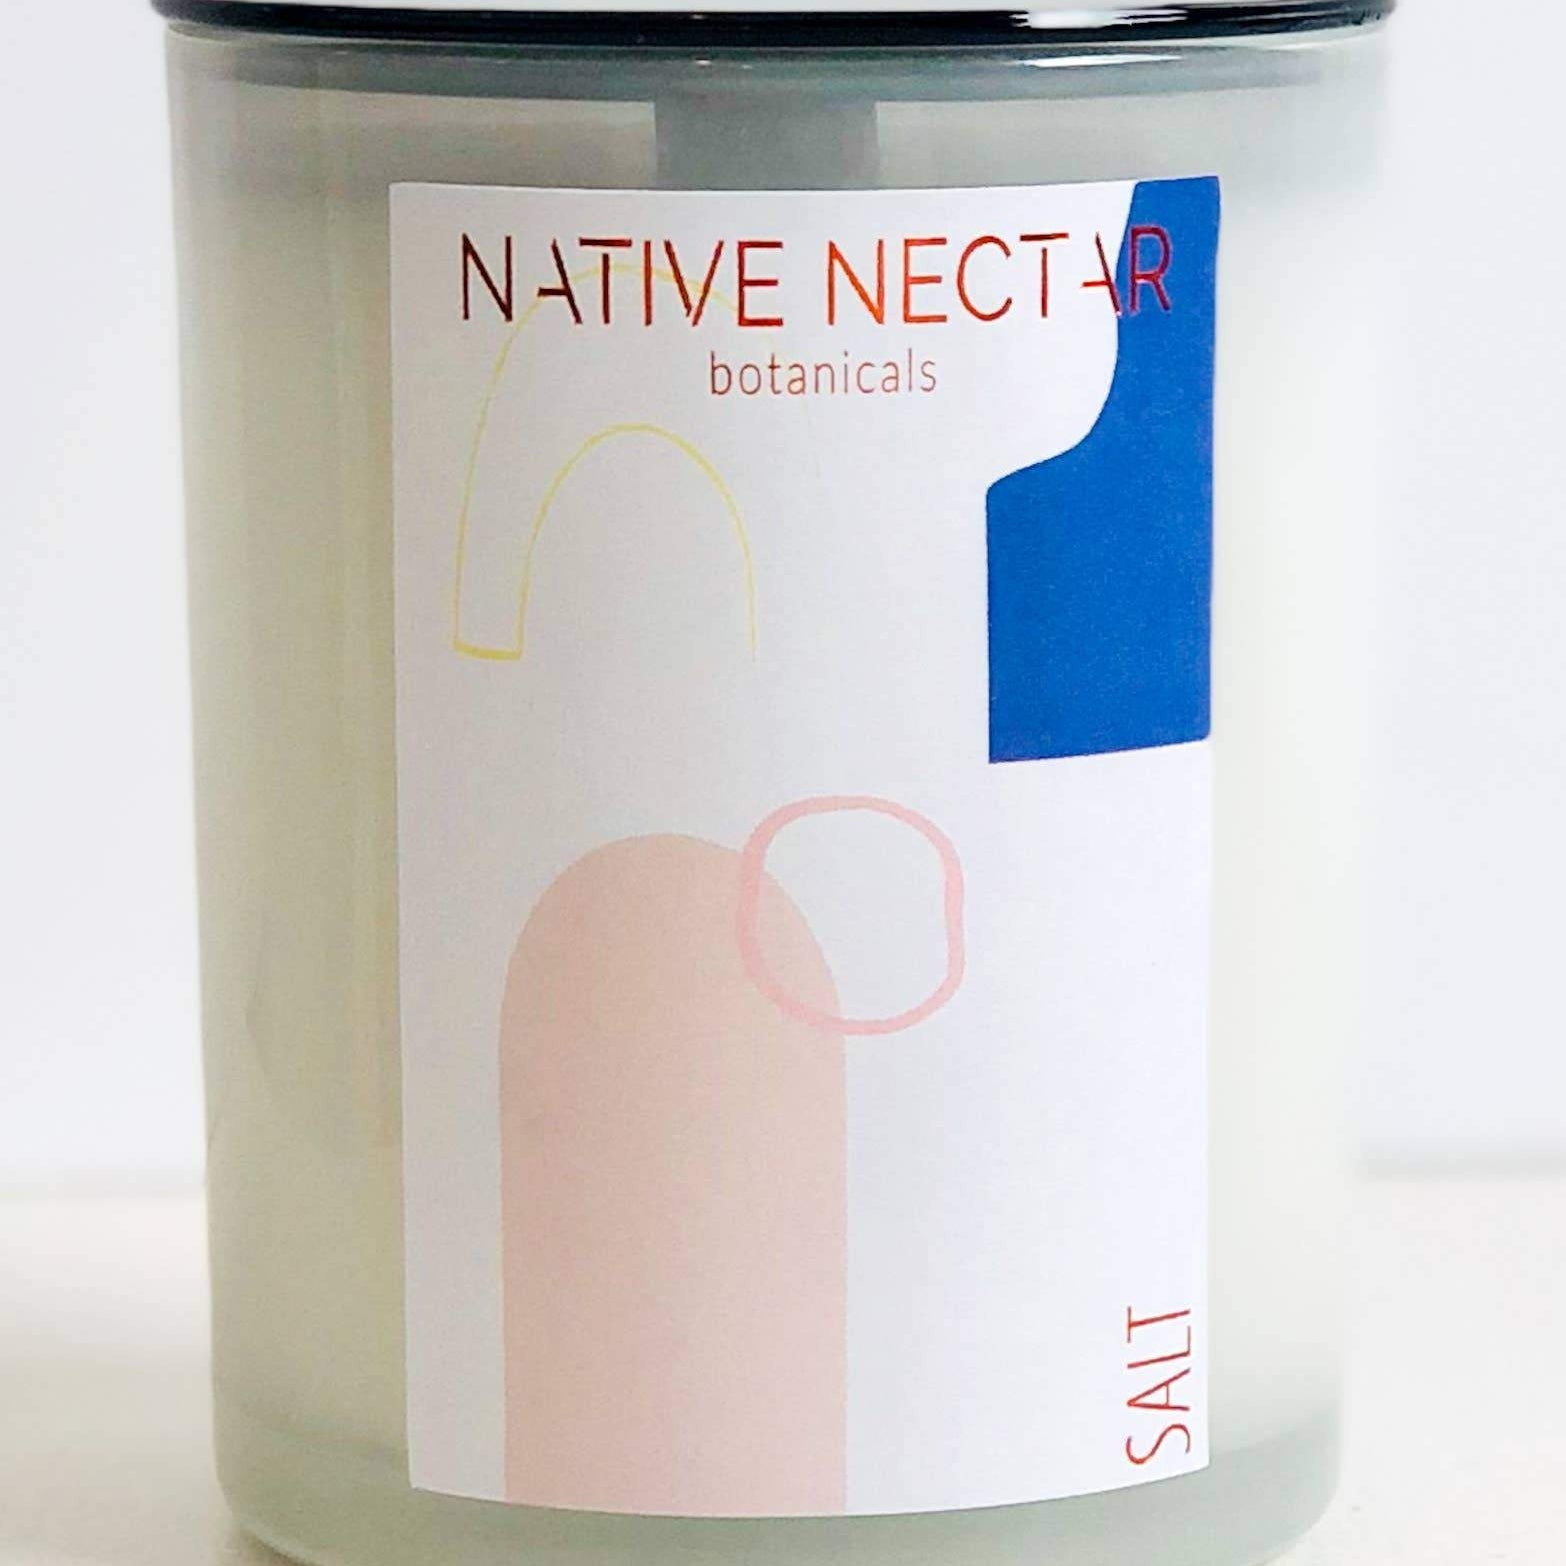 wood wick candle in clear glass jar with pink blue and white graphic design label